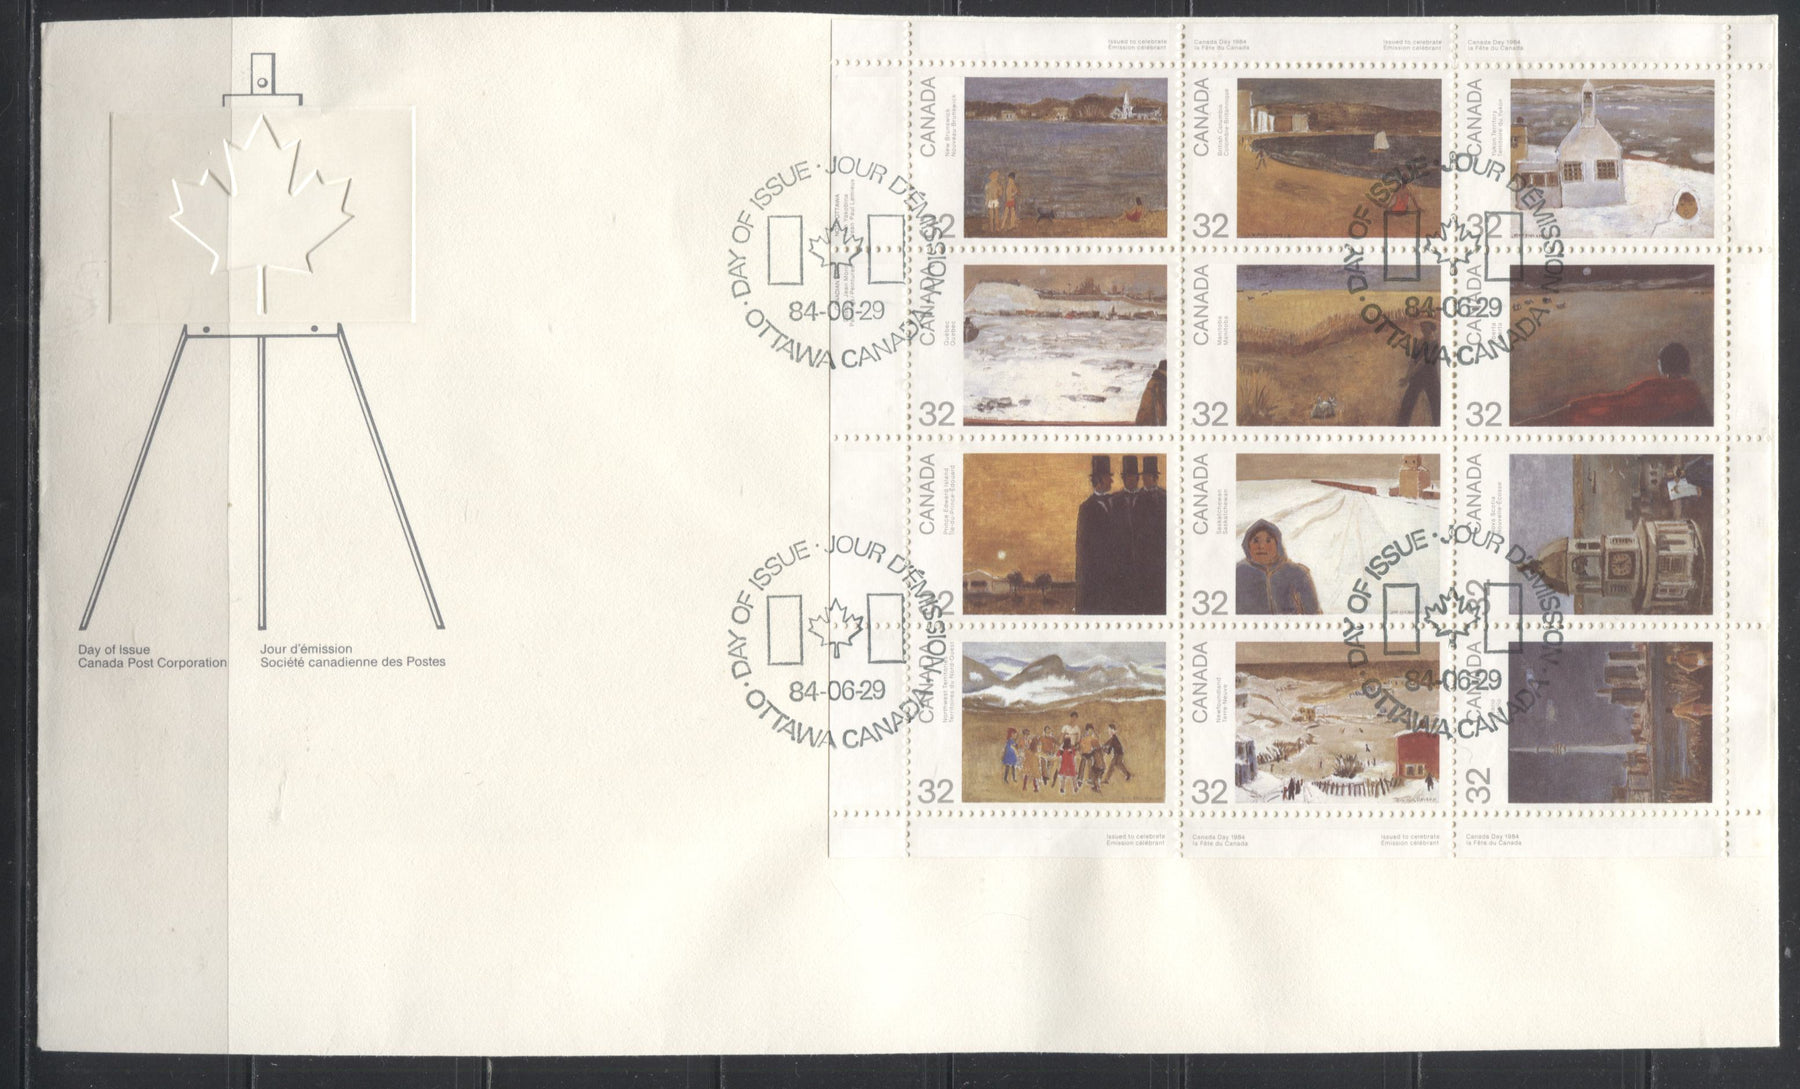 Canada #1027a, Canada Day 1984 Pane Of 12 On Canada Post OFDC